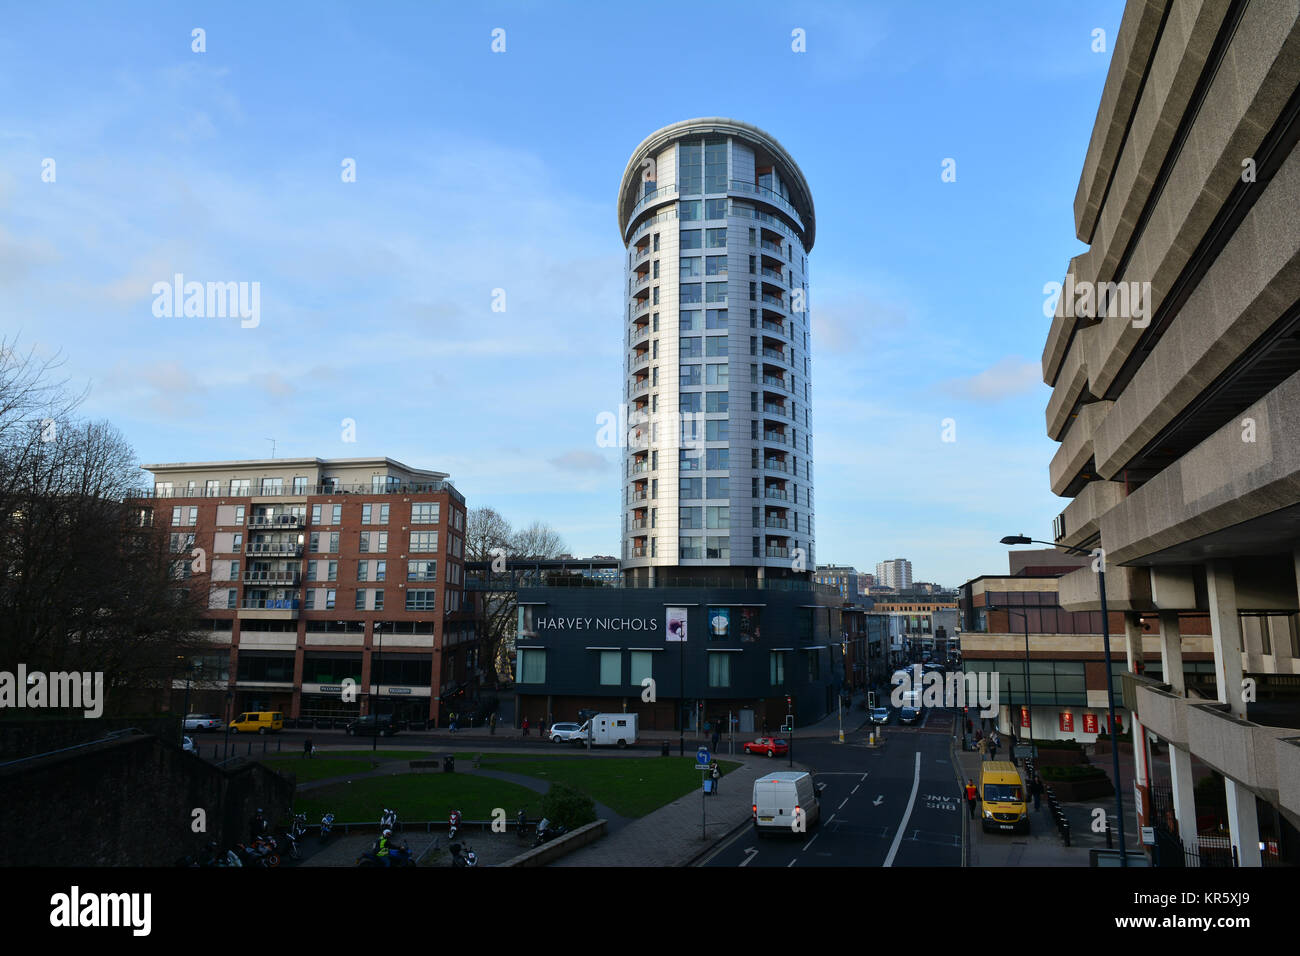 Bristol, UK. 18th Dec, 2017. 14 story high Eclipse Tower have been told there is no imminet risk to their safety. - Stock Image